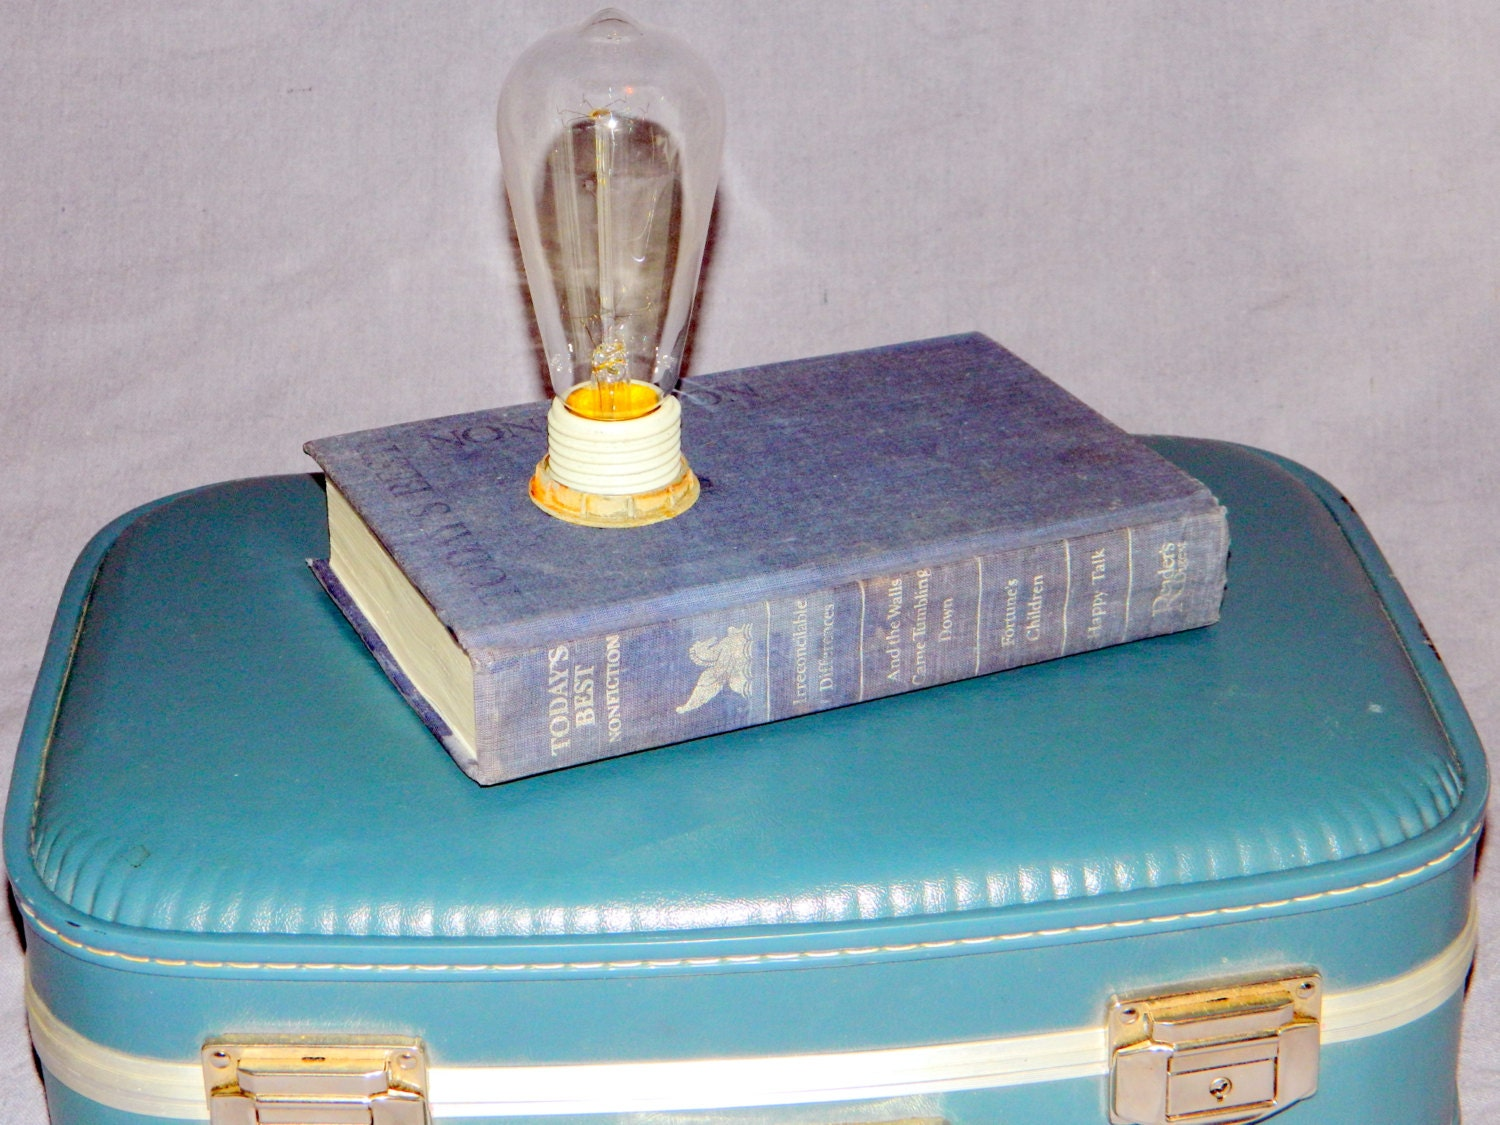 upcycled lampe vintage buches lampe buch lampe tischlampe. Black Bedroom Furniture Sets. Home Design Ideas